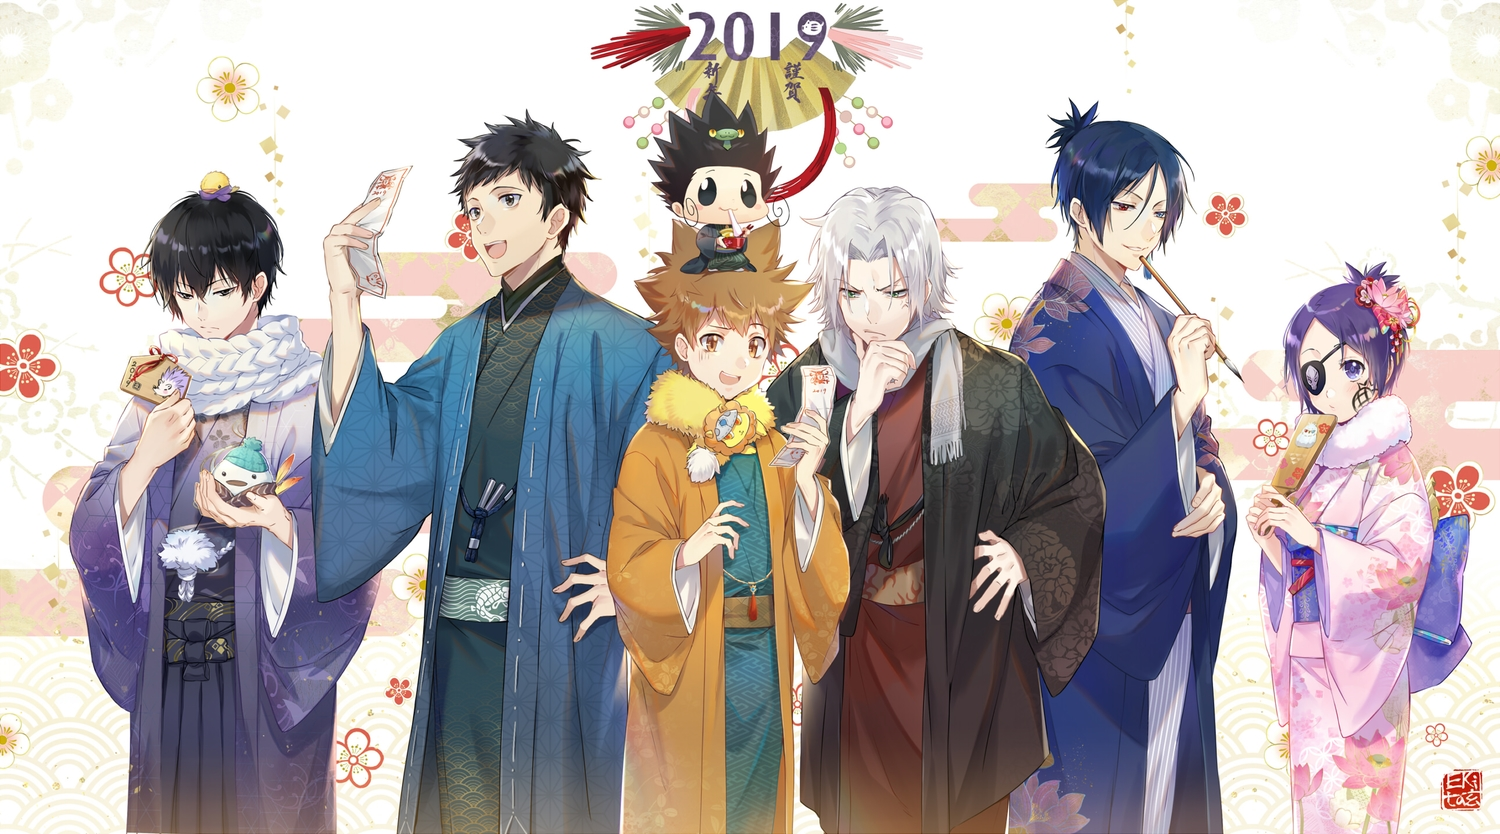 animal bicolored_eyes bird black_eyes black_hair blue_hair blush brown_eyes brown_hair dokuro_chrome ekita_xuan eyepatch flowers gokudera_hayato gray_hair green_eyes group hibari_kyouya japanese_clothes katekyou_hitman_reborn kimono male purple_eyes purple_hair reborn rokudou_mukuro sawada_tsunayoshi scarf short_hair yamamoto_takeshi